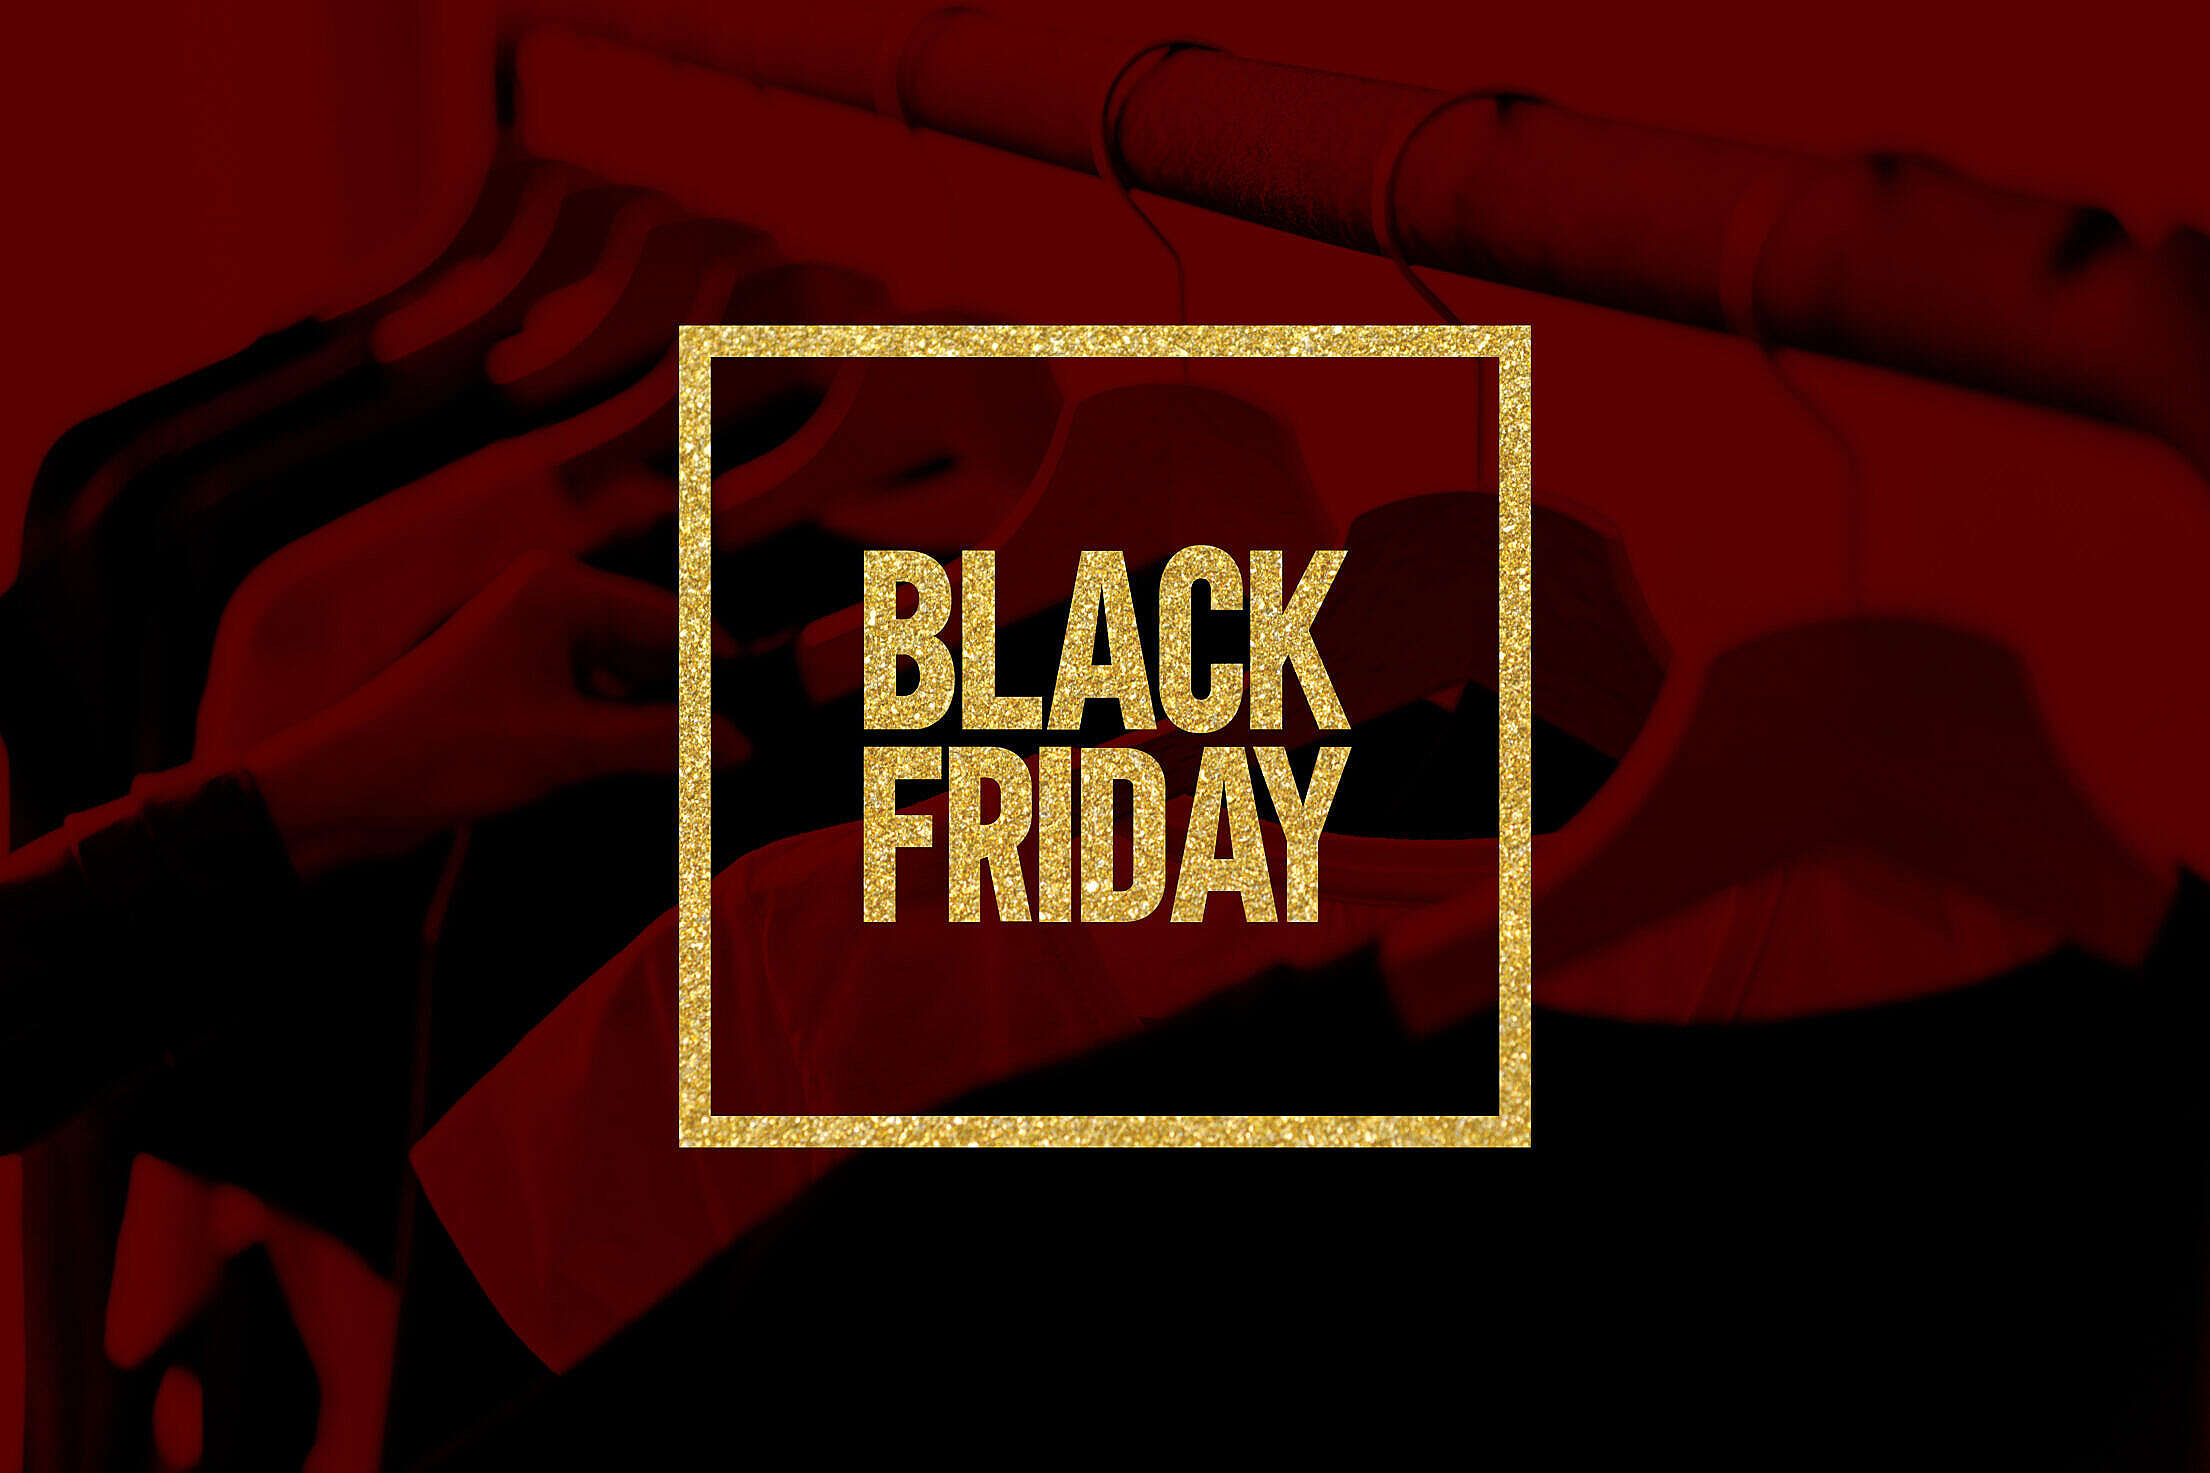 Black Friday Picture Golden Glitter Visual Free Stock Photo